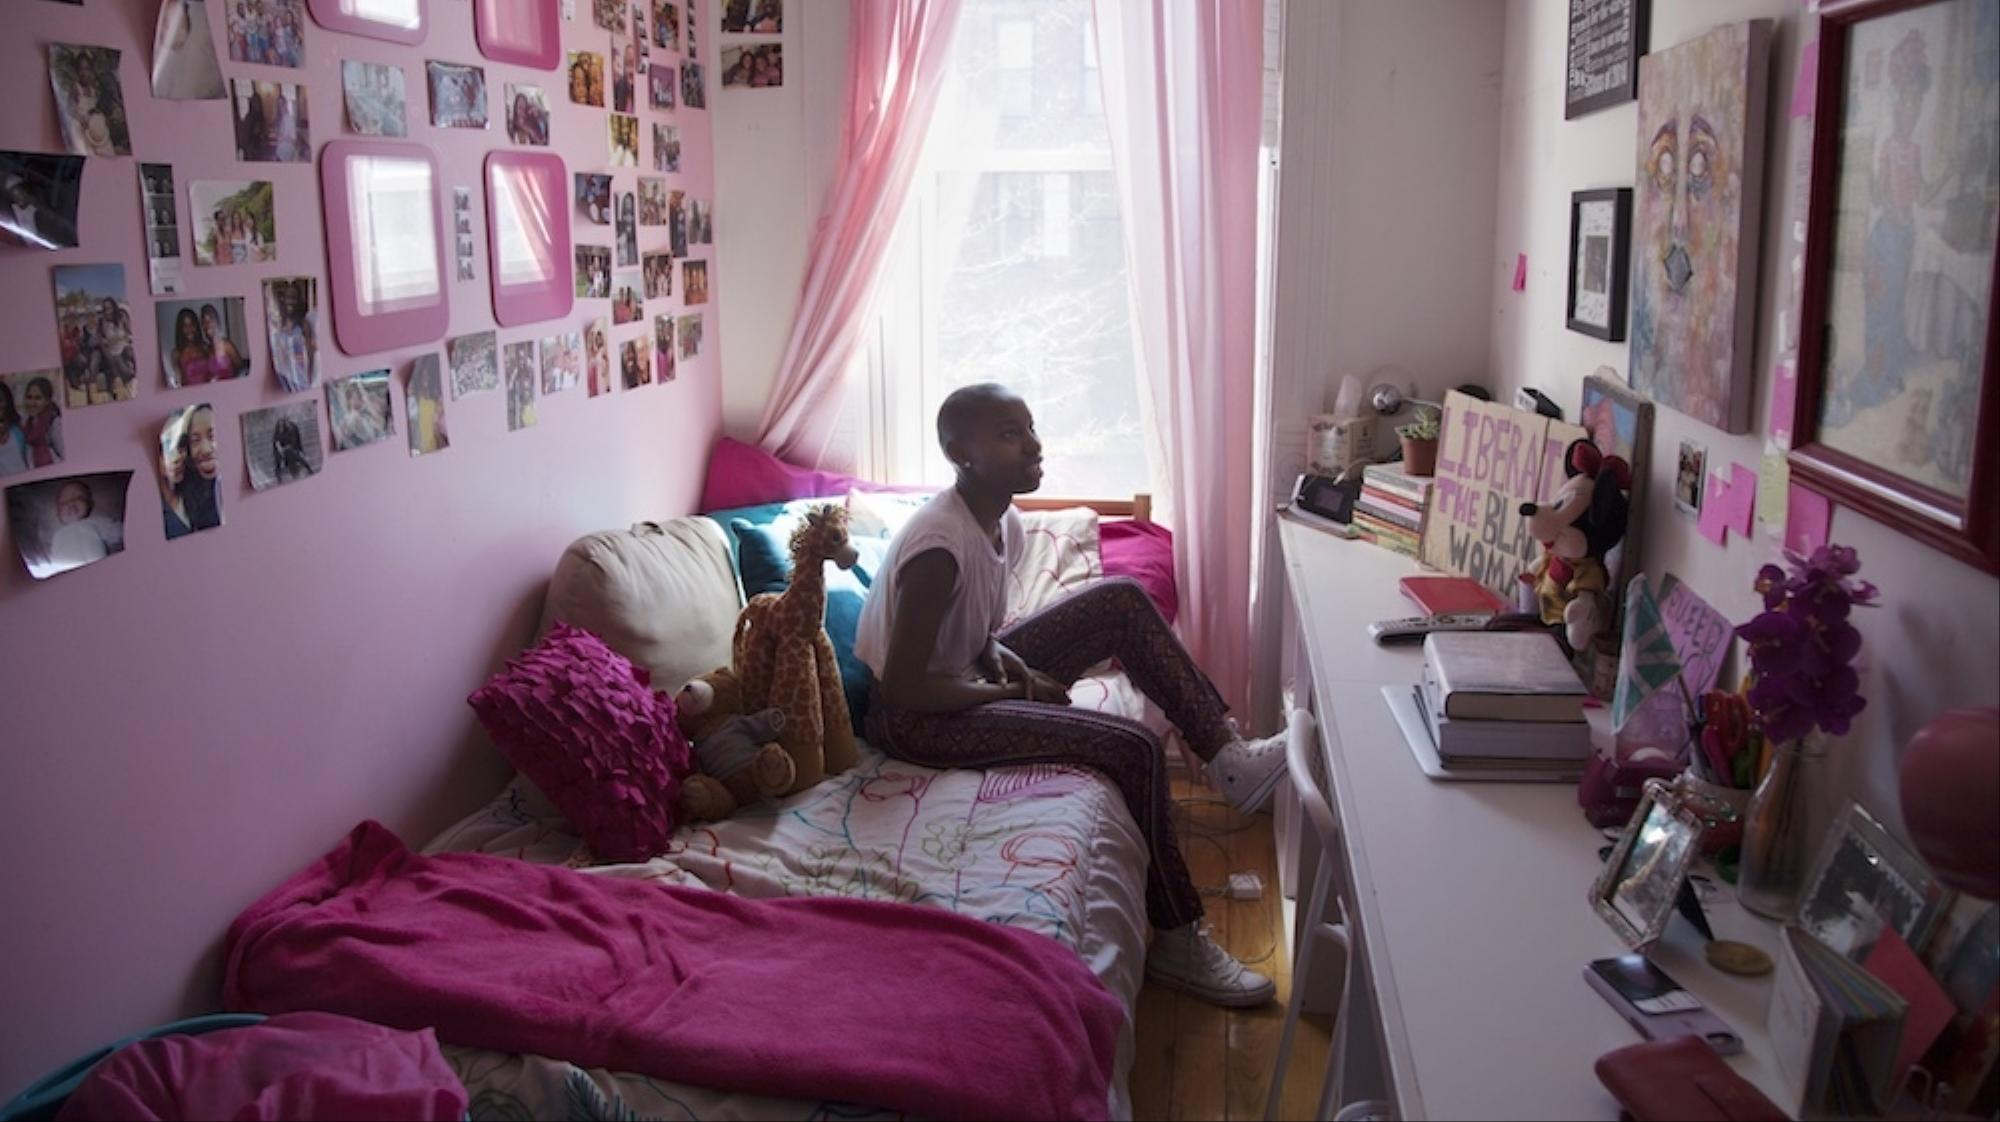 photographing new york city teen girls in their bedrooms